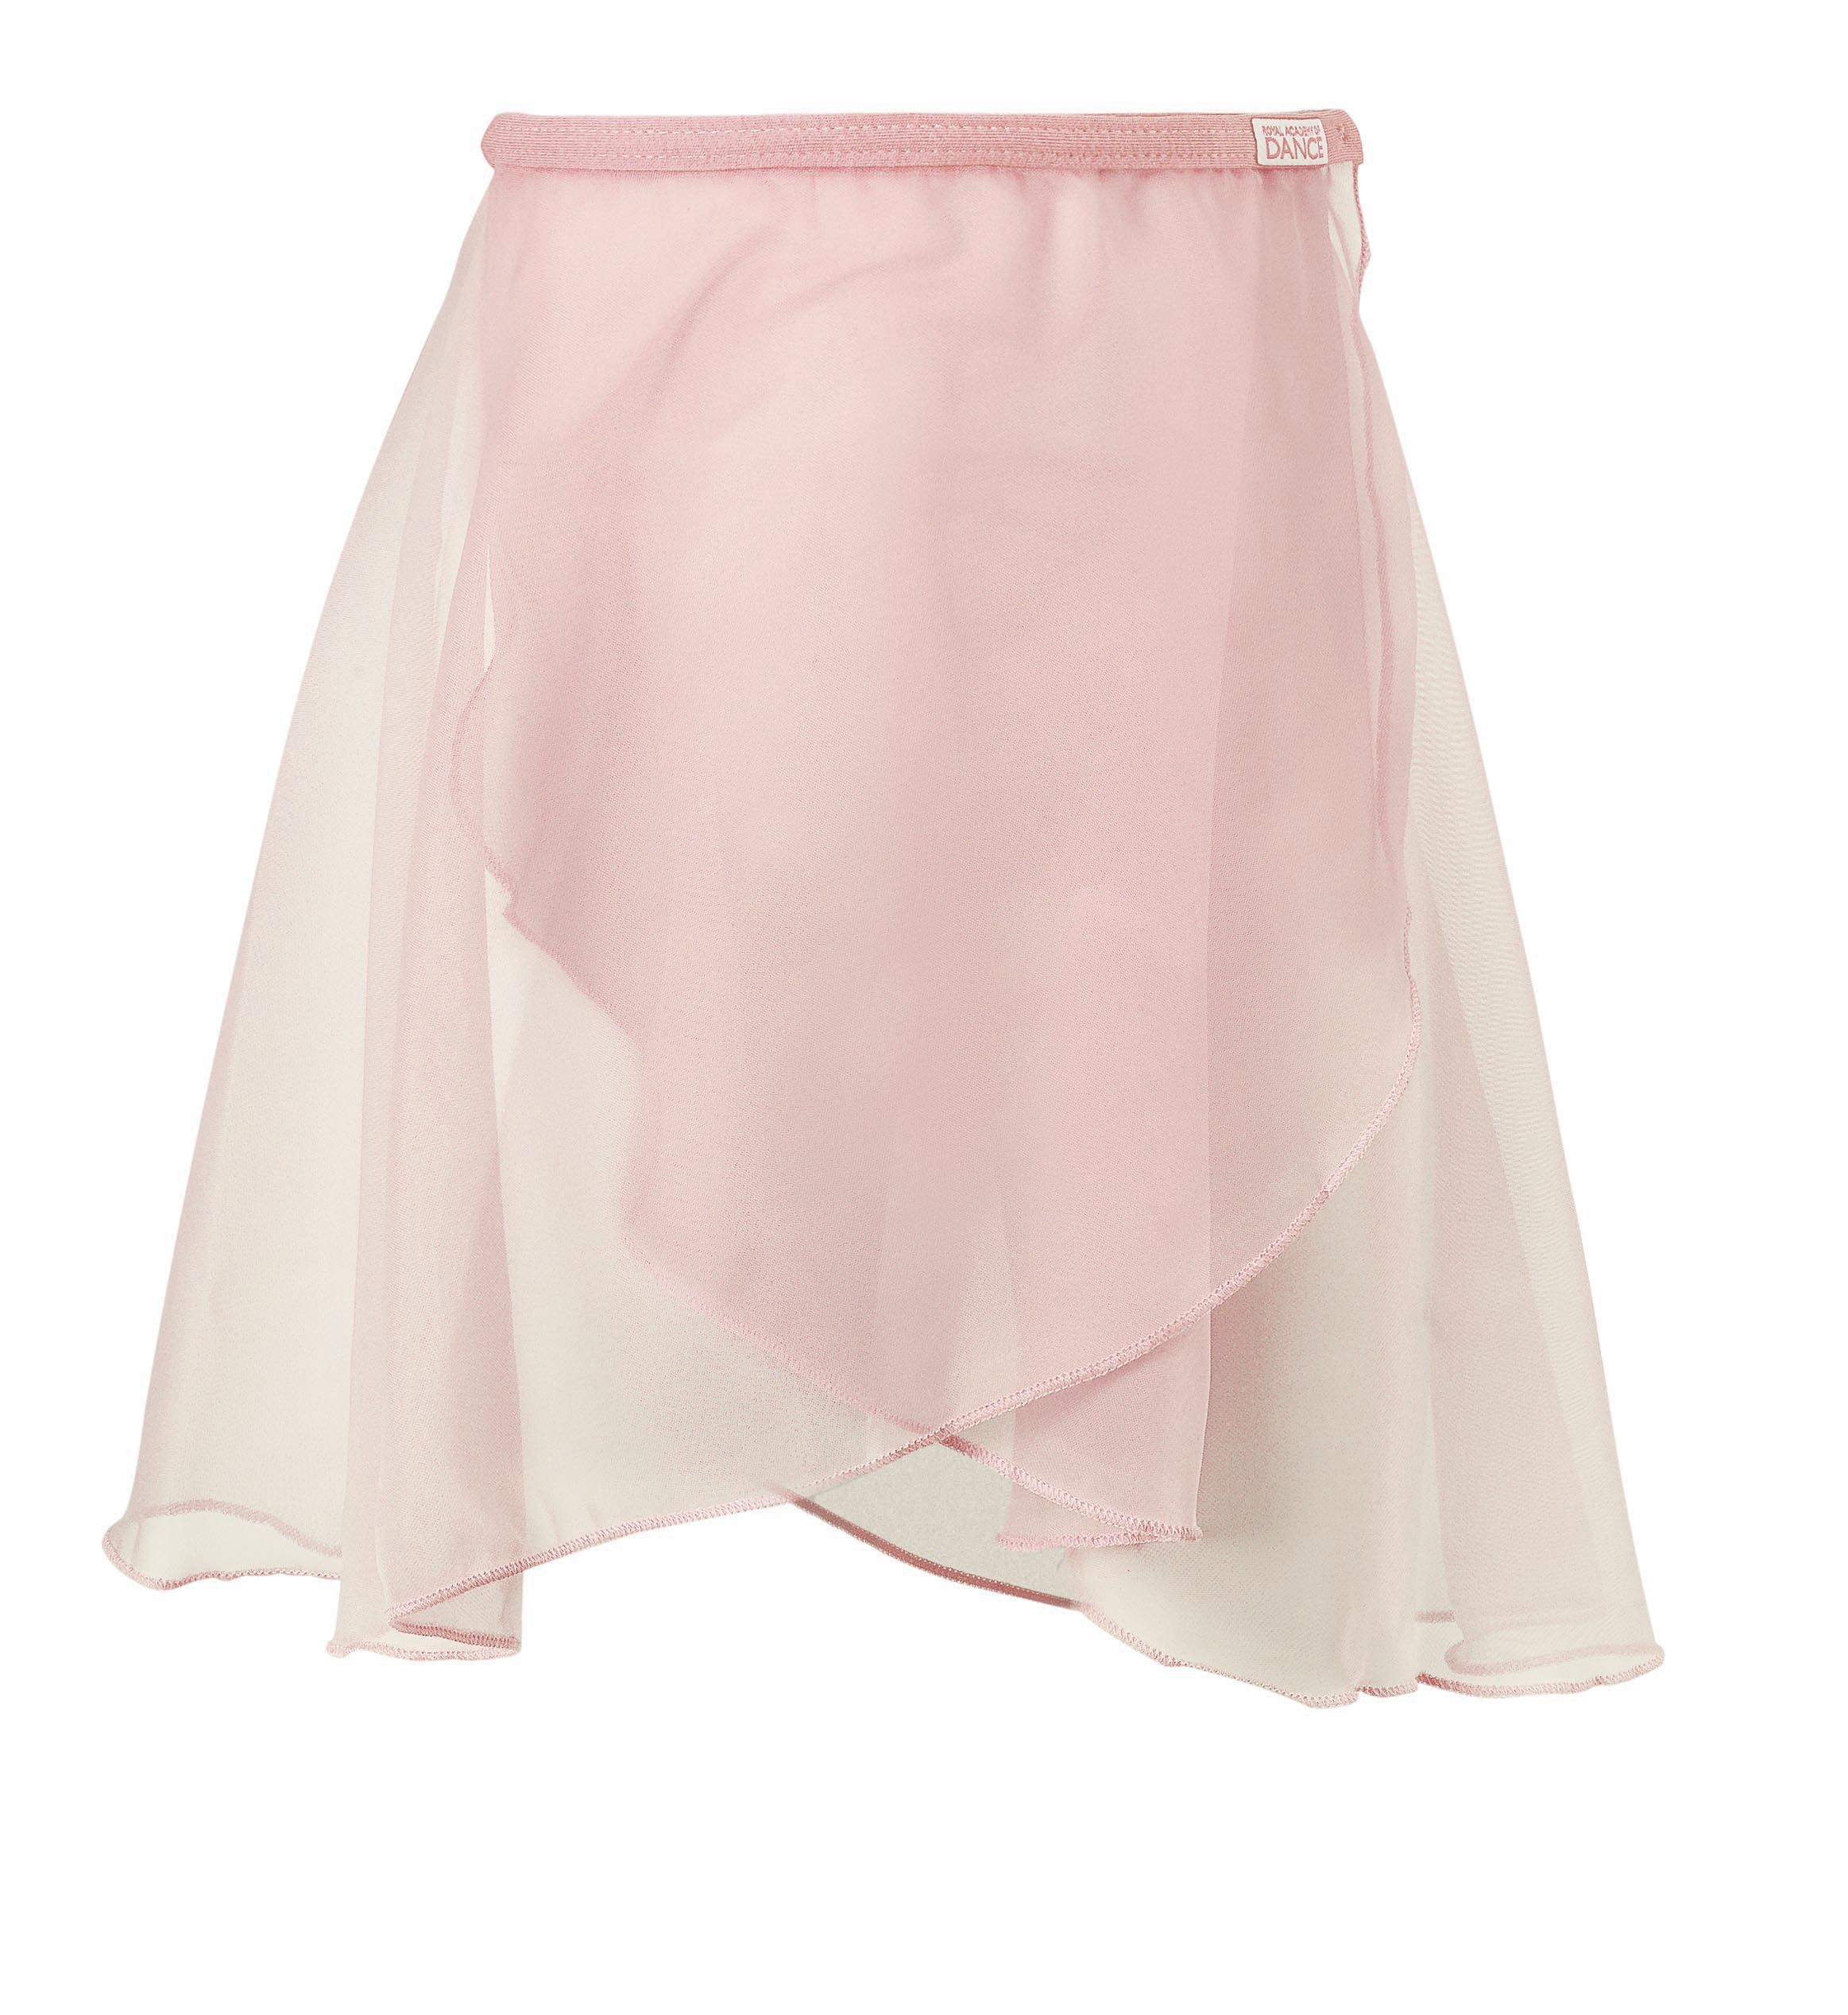 (a) Pink Elasticated Skirt for Primary, Pre-Primary and Introductory Ballet